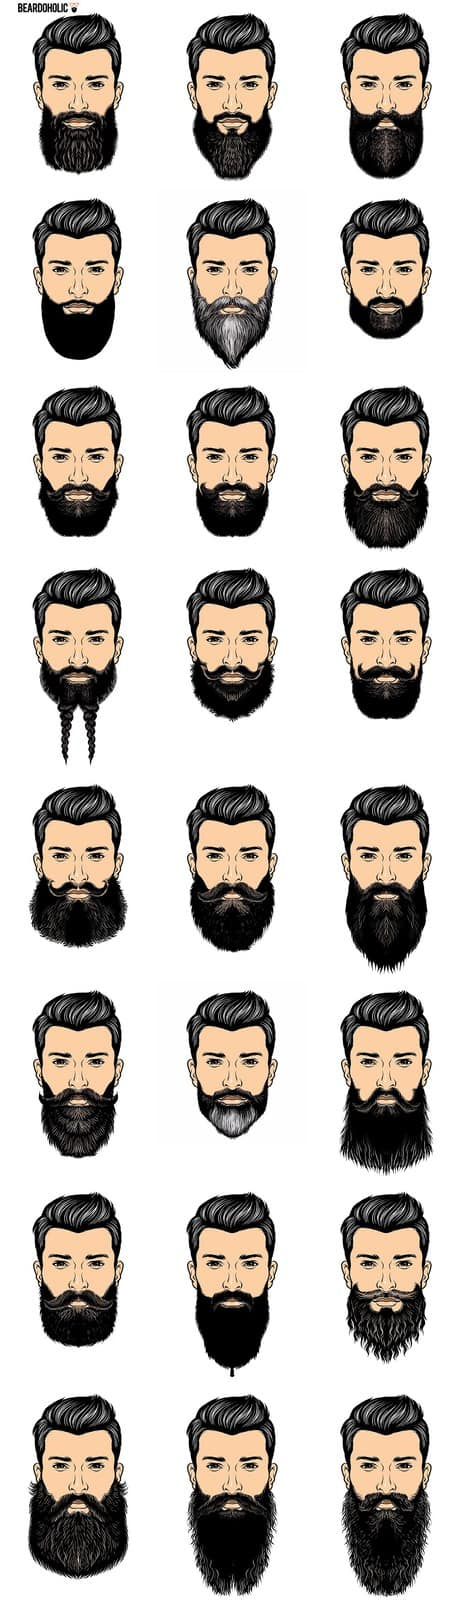 Beards of Silicon Valley